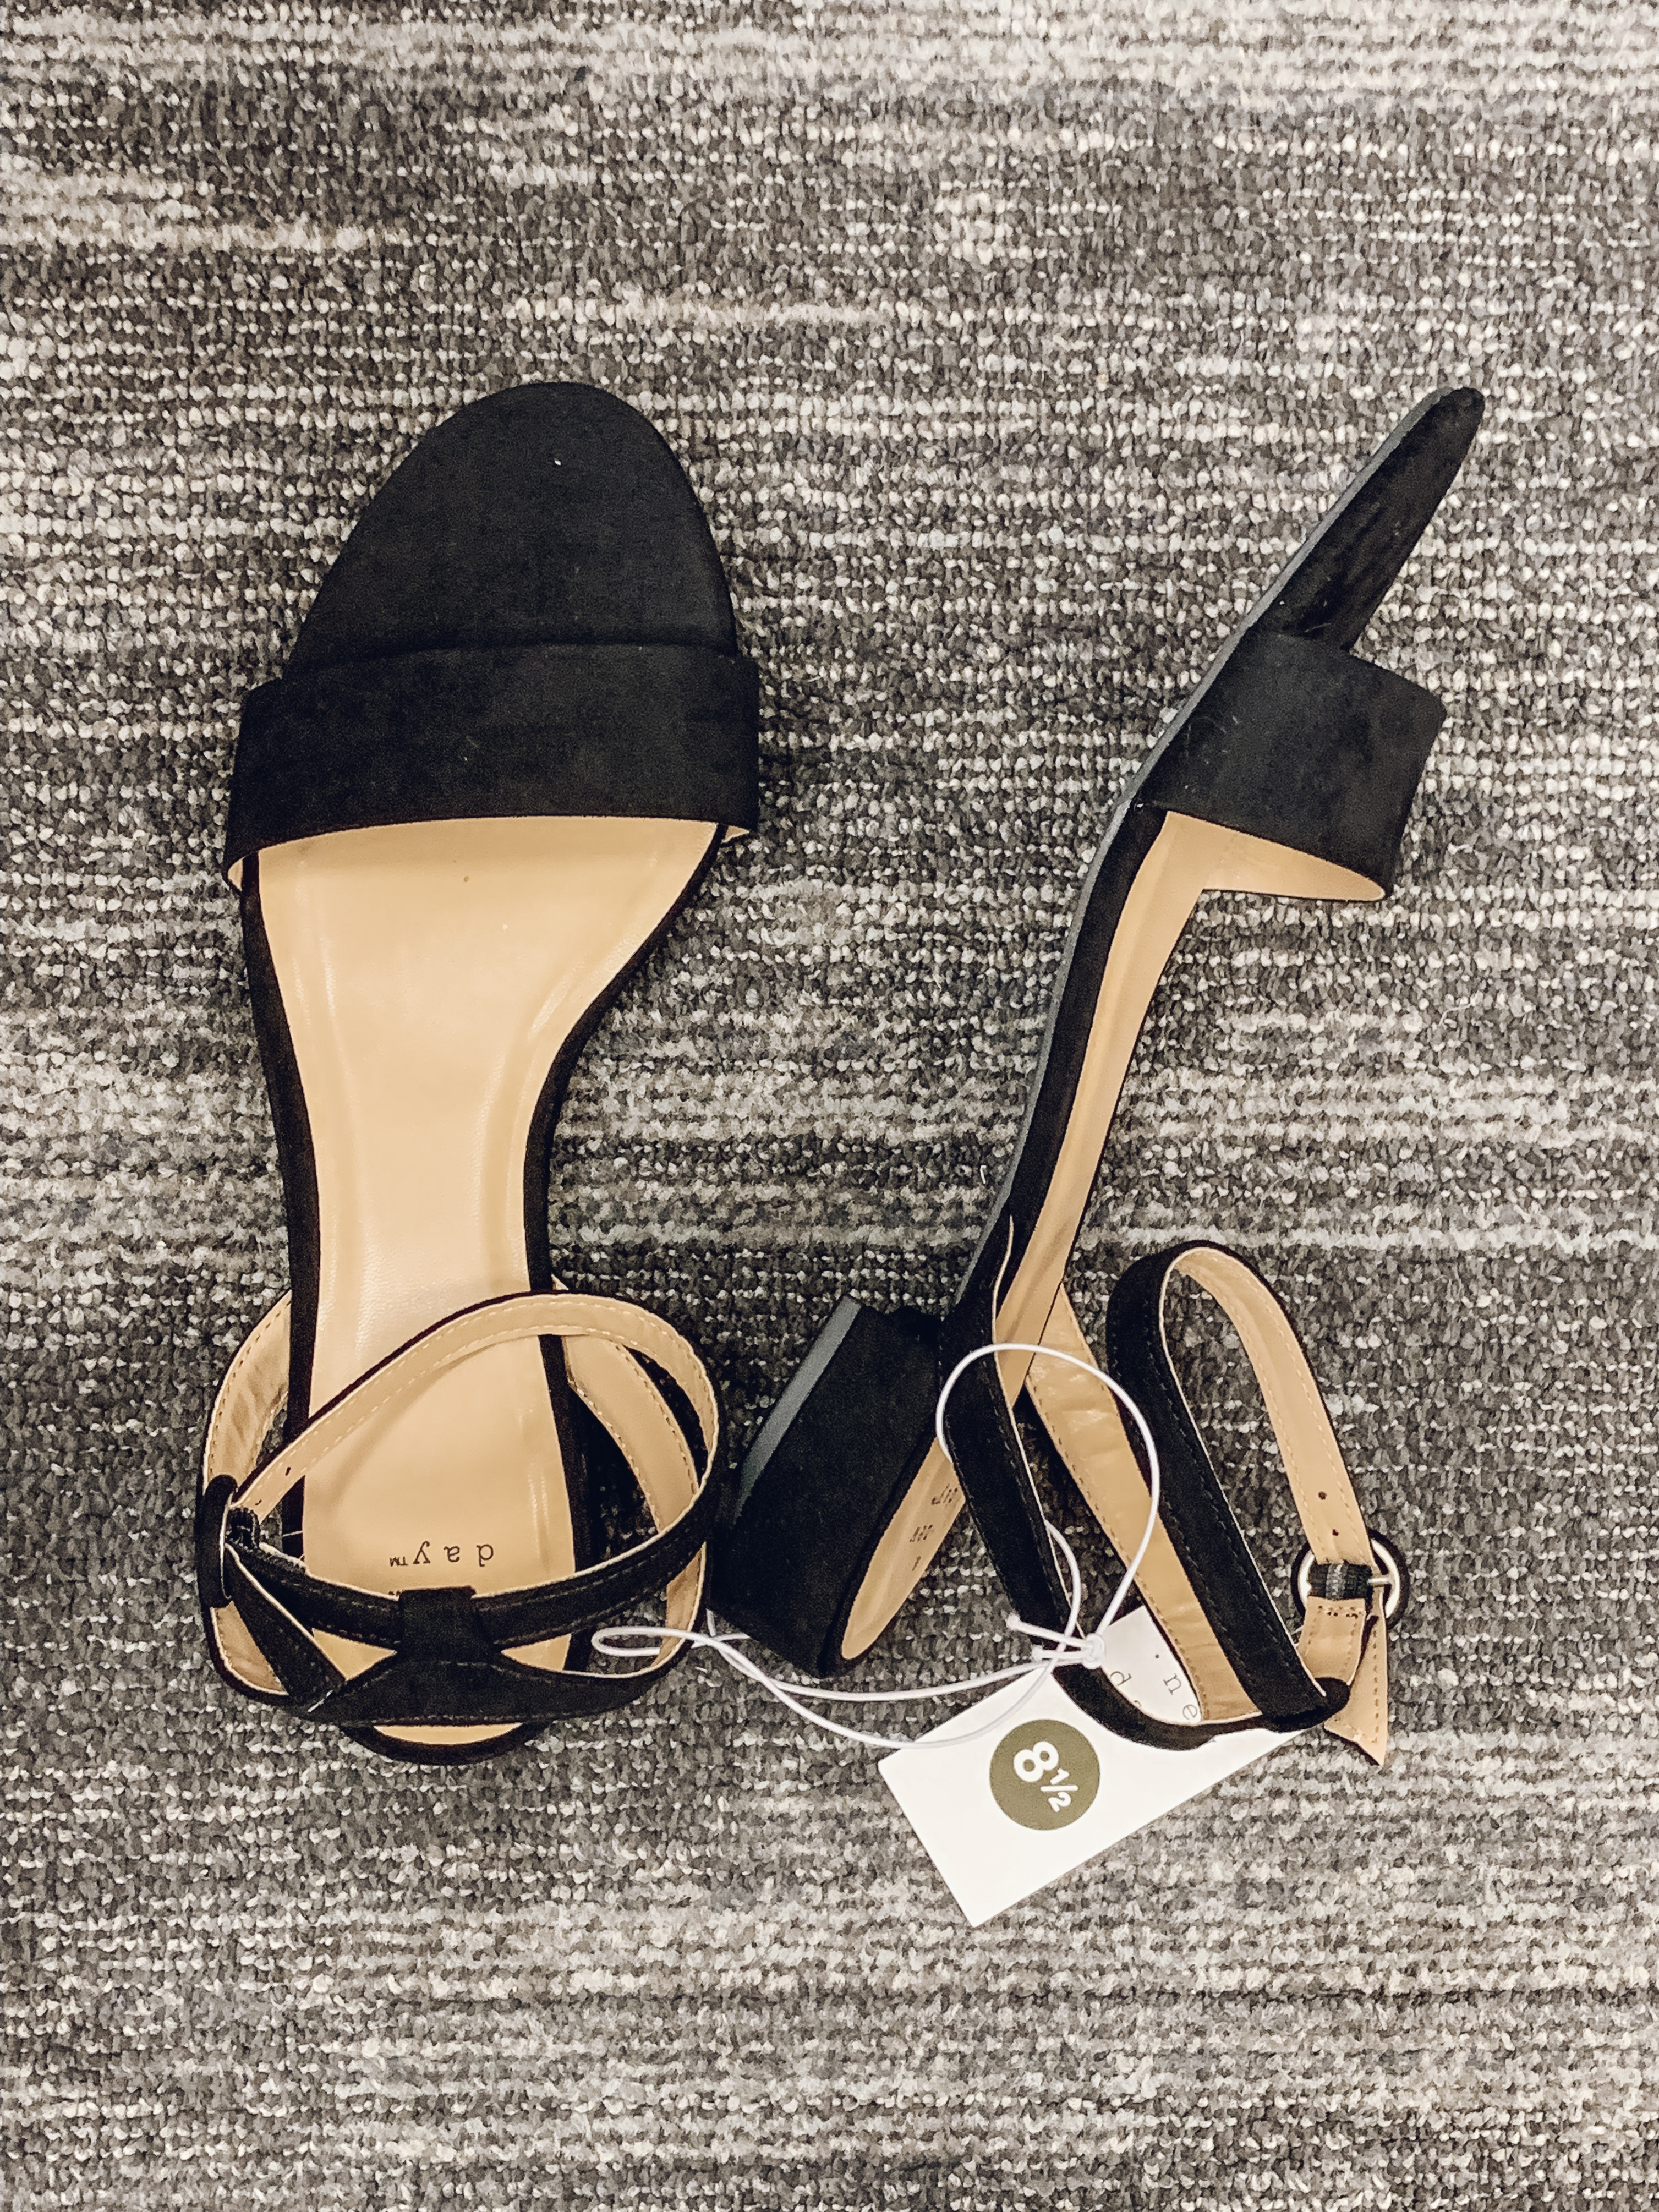 Affordable style blogger, Lauren Dix, shares 18 of the best Target sandals for 2019!